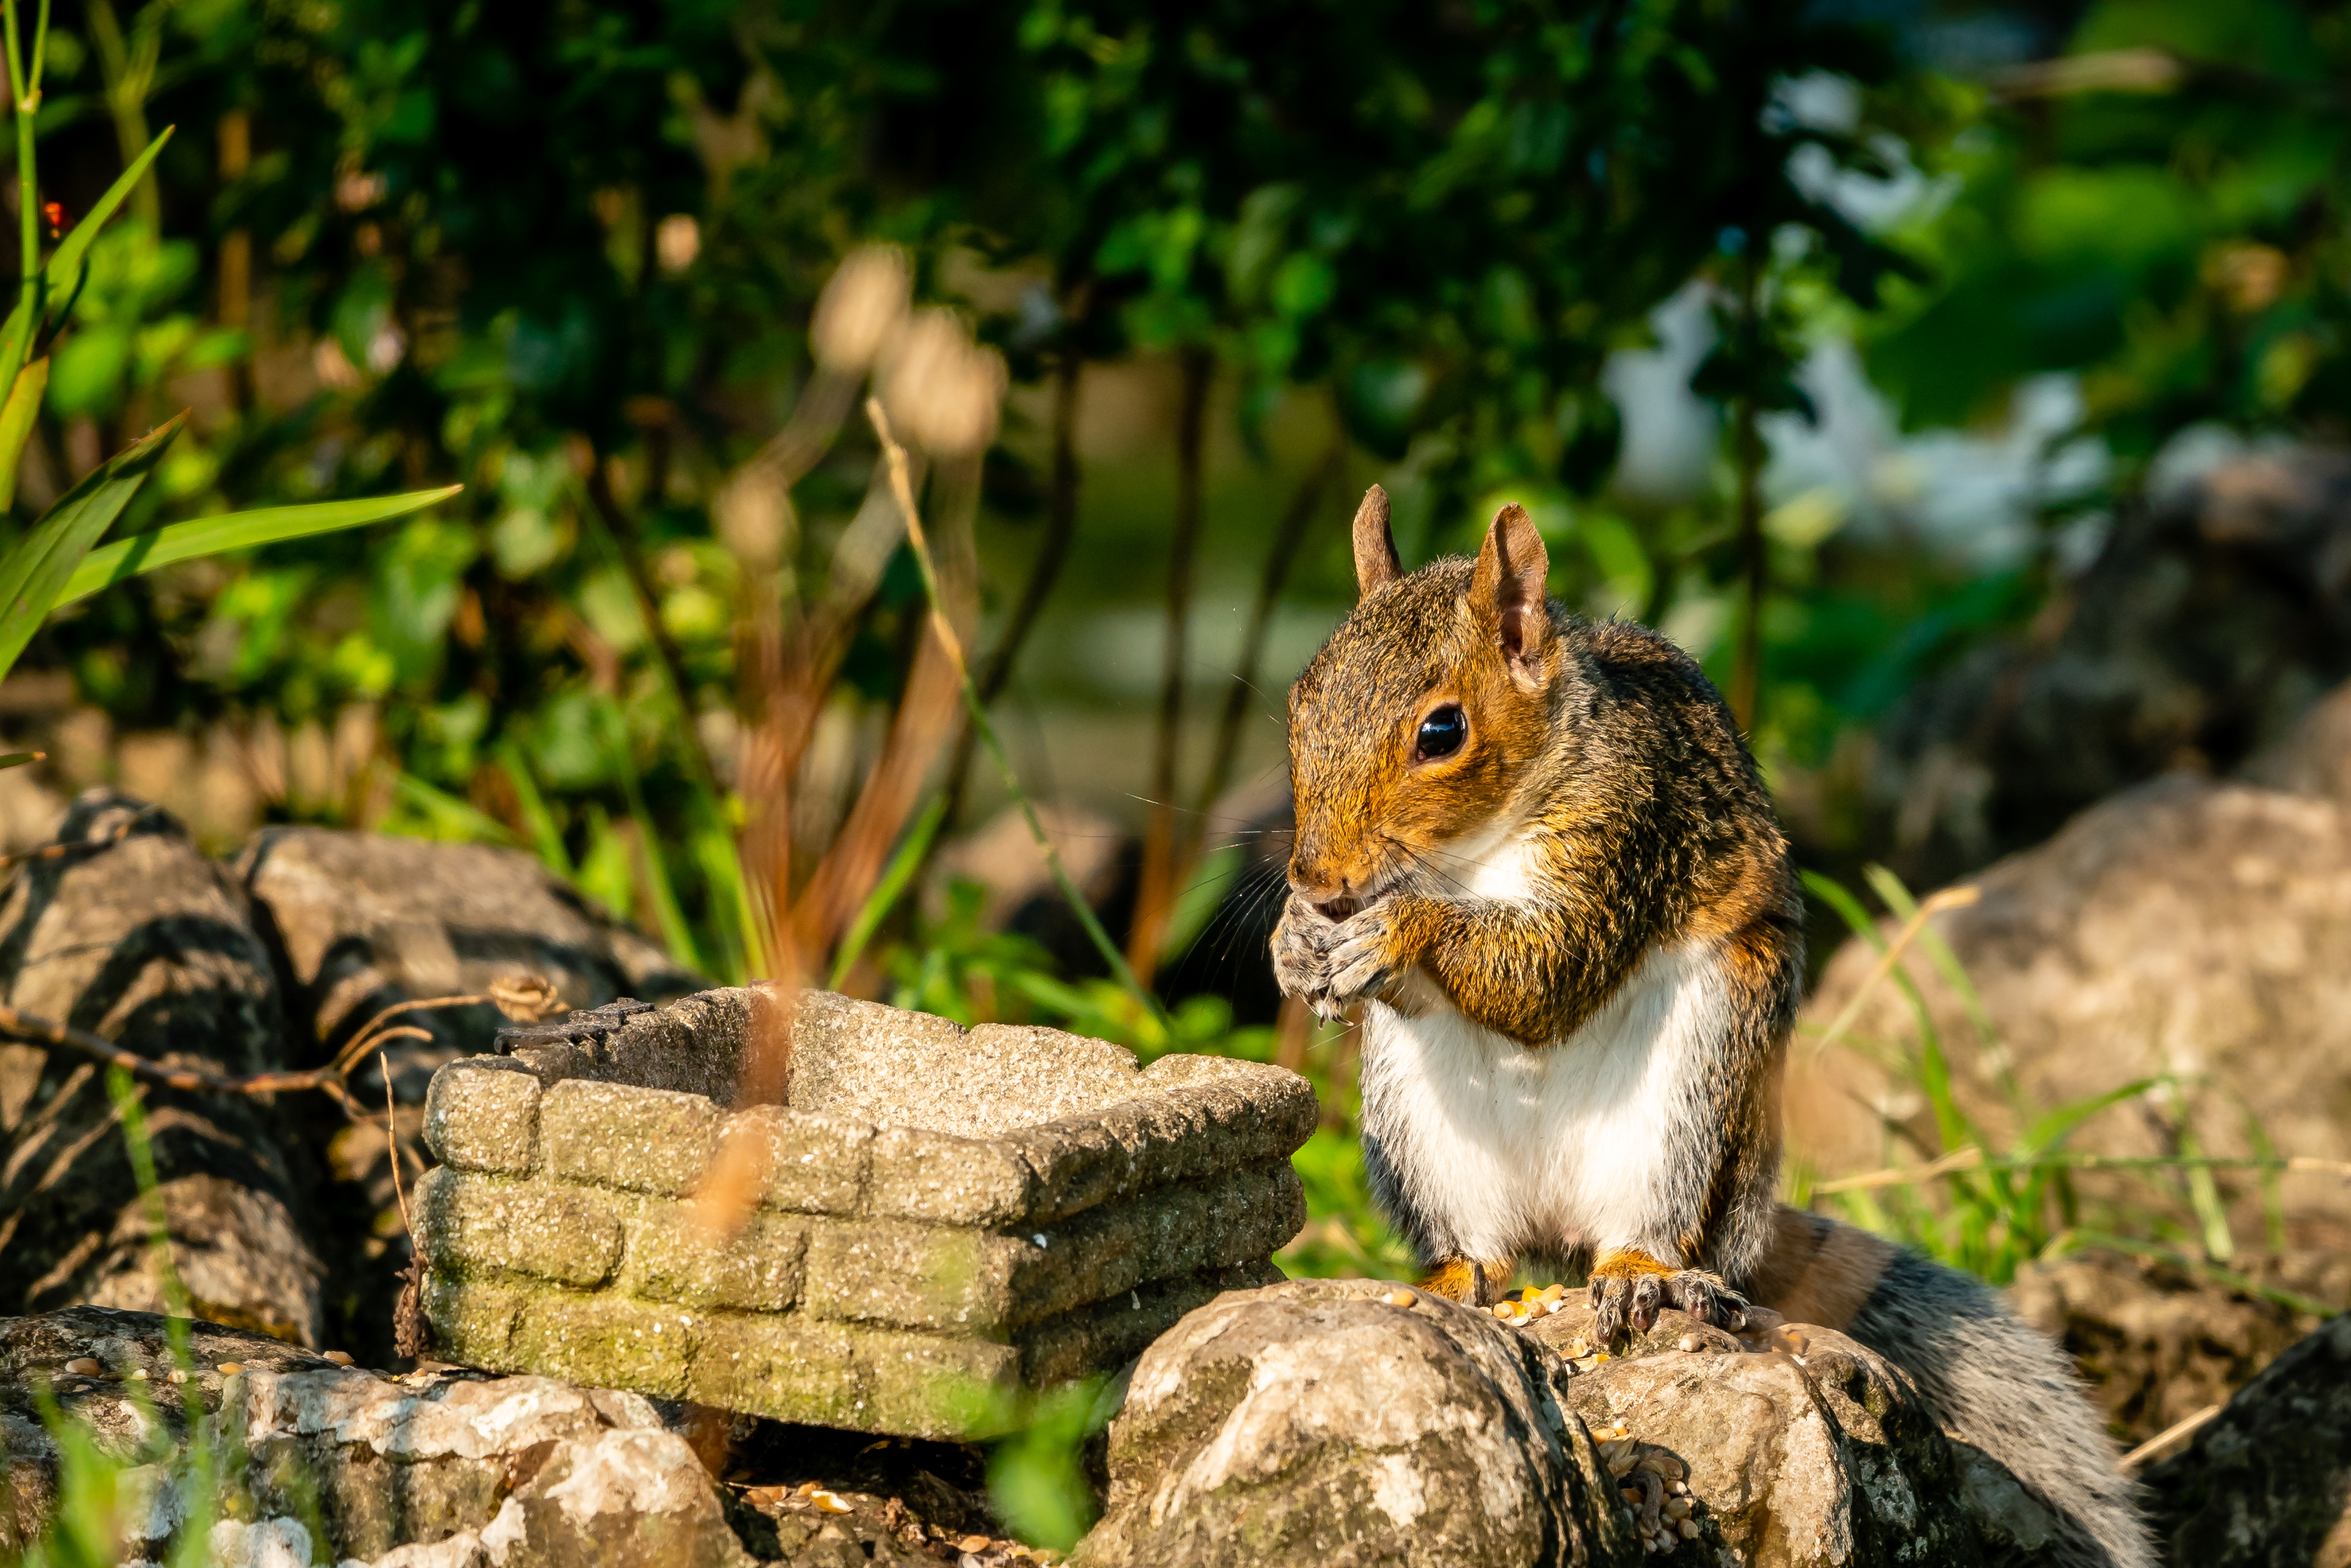 72215 download wallpaper Animals, Squirrel, Rodent, Animal, Stones screensavers and pictures for free